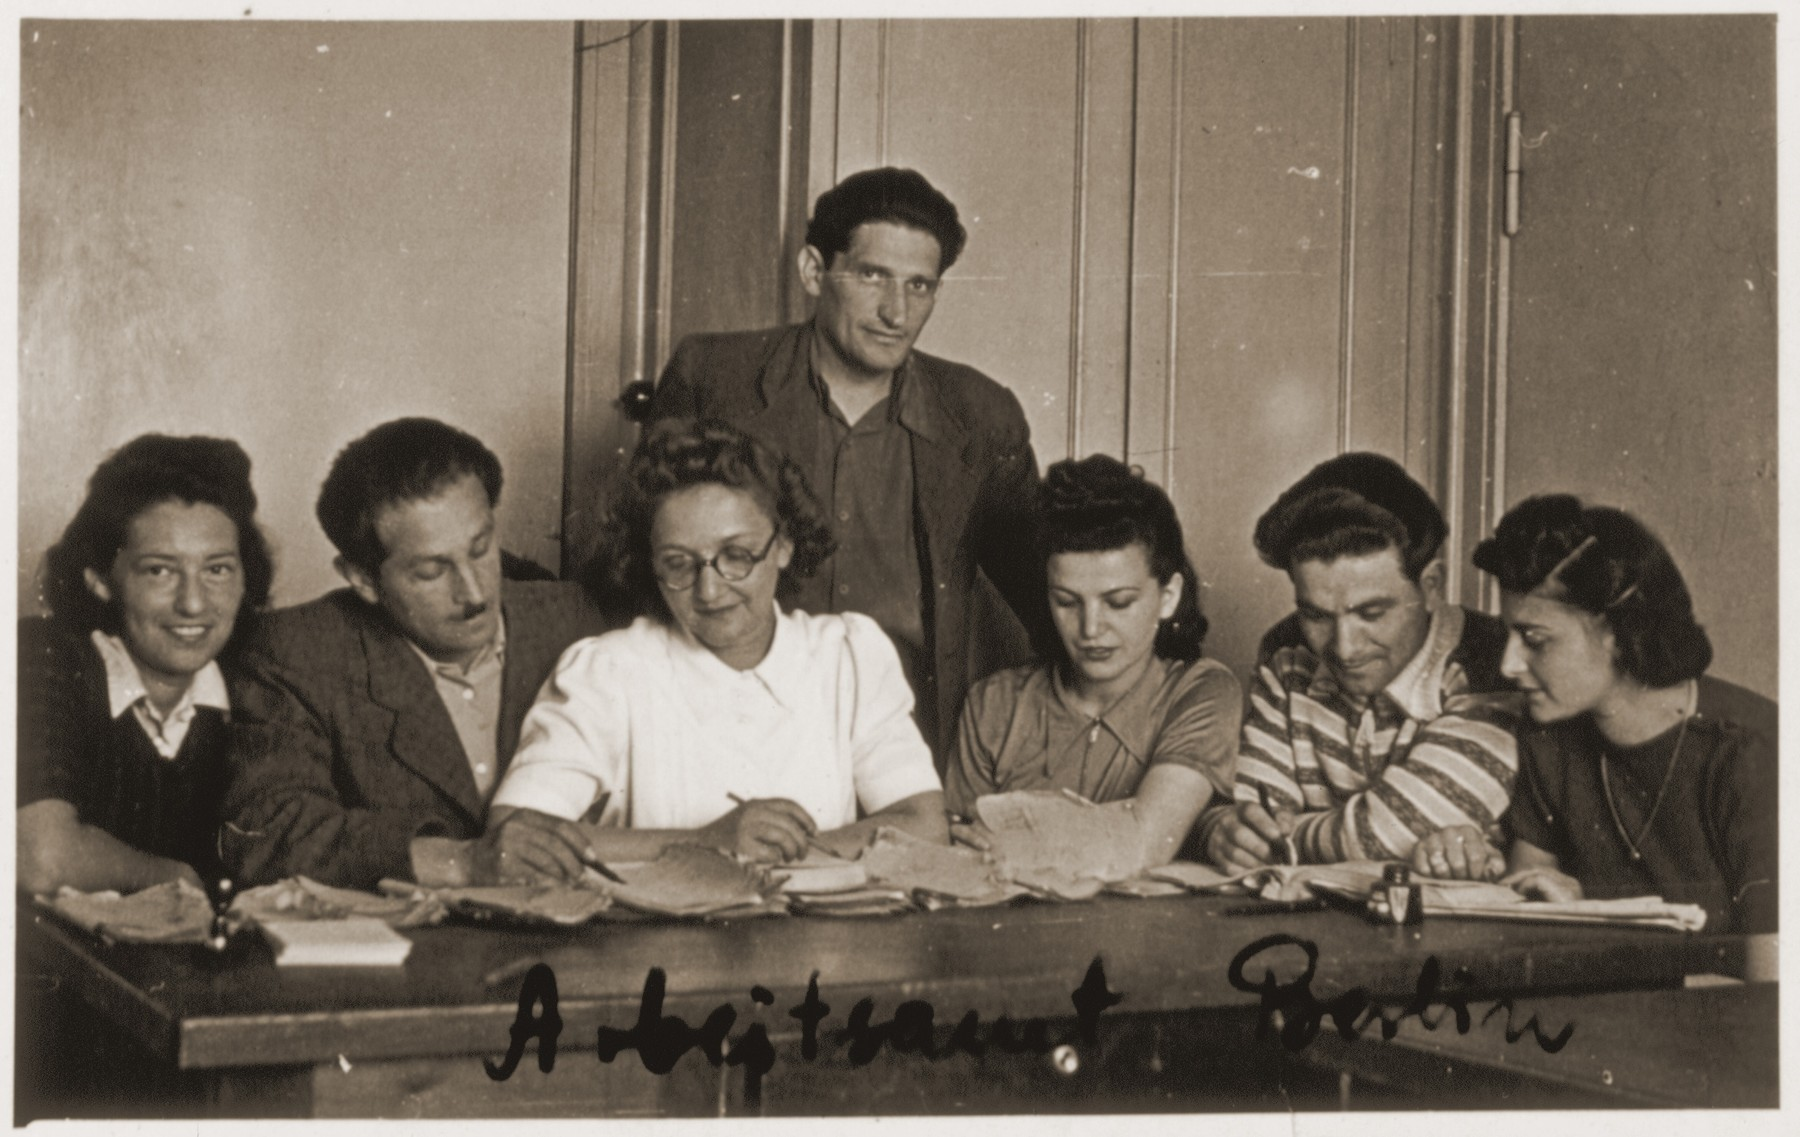 Group portrait of the staff of the employment office at the Schlachtensee displaced persons camp.  Among those pictured are: Rozalia (Krysia Laks) Lerman (far right); Mary Binder (third from the right), and Ms. Langsam (in white).